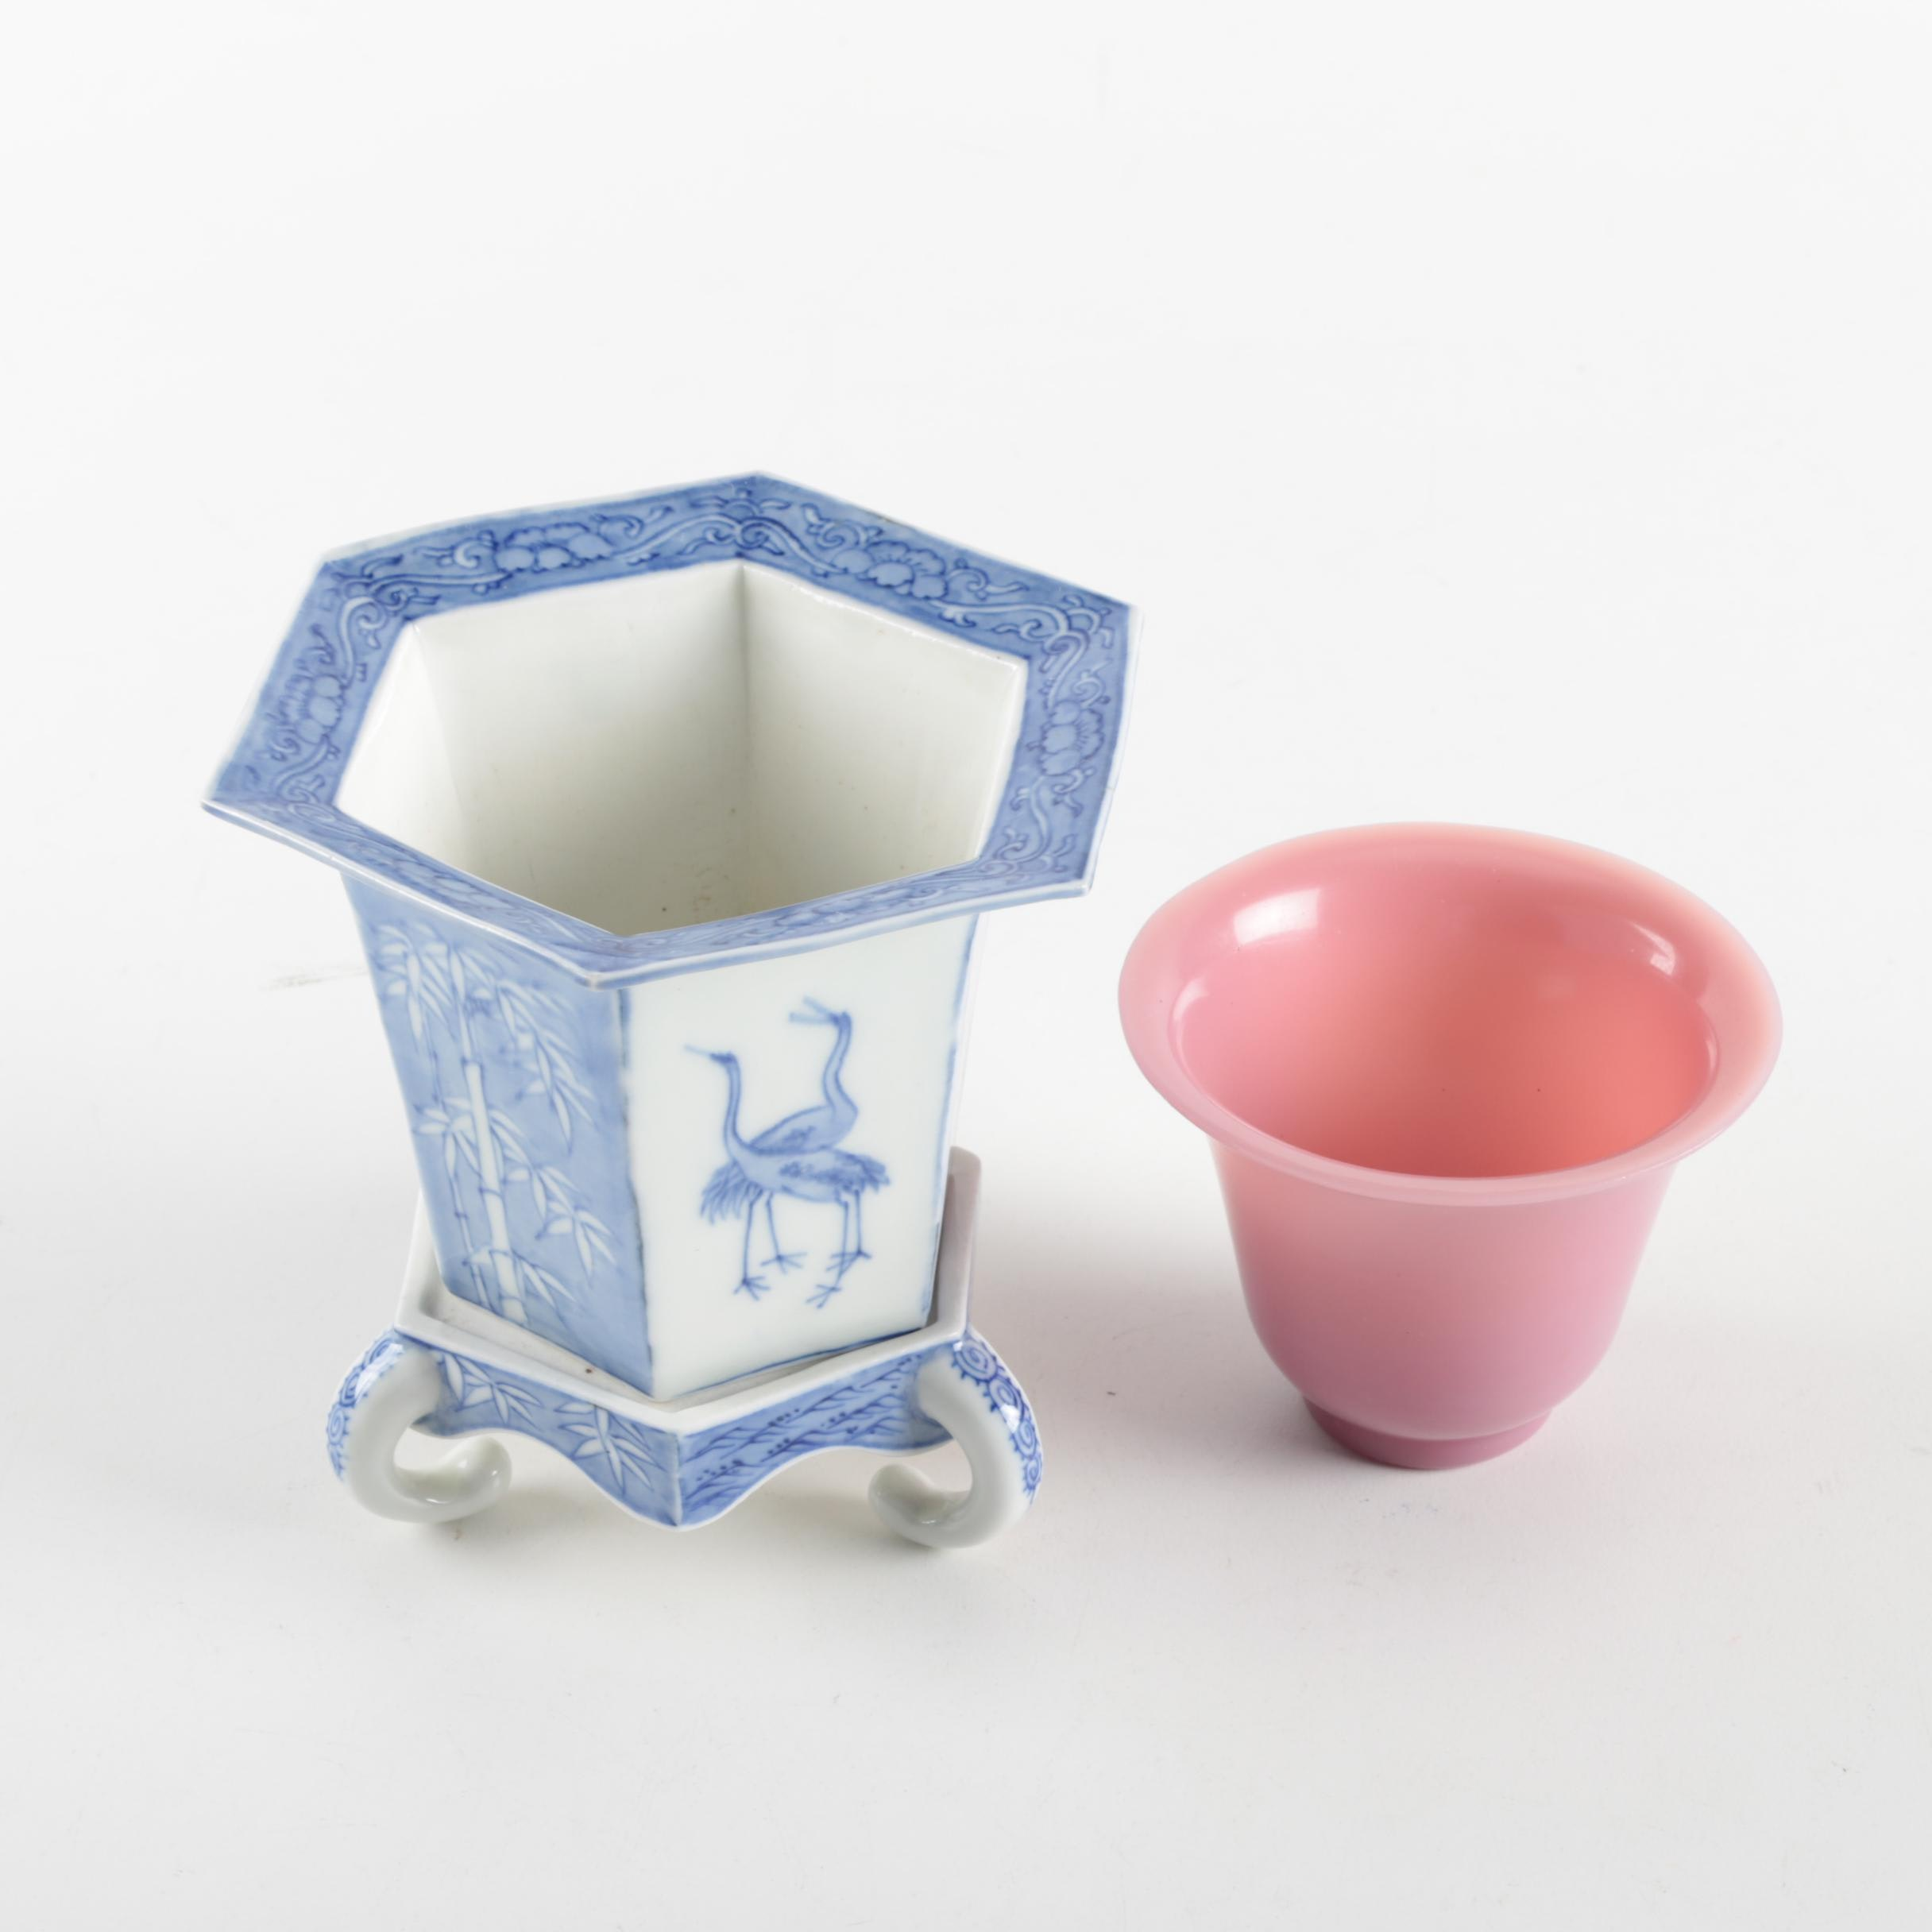 East Asian Porcelain Planter and Cup